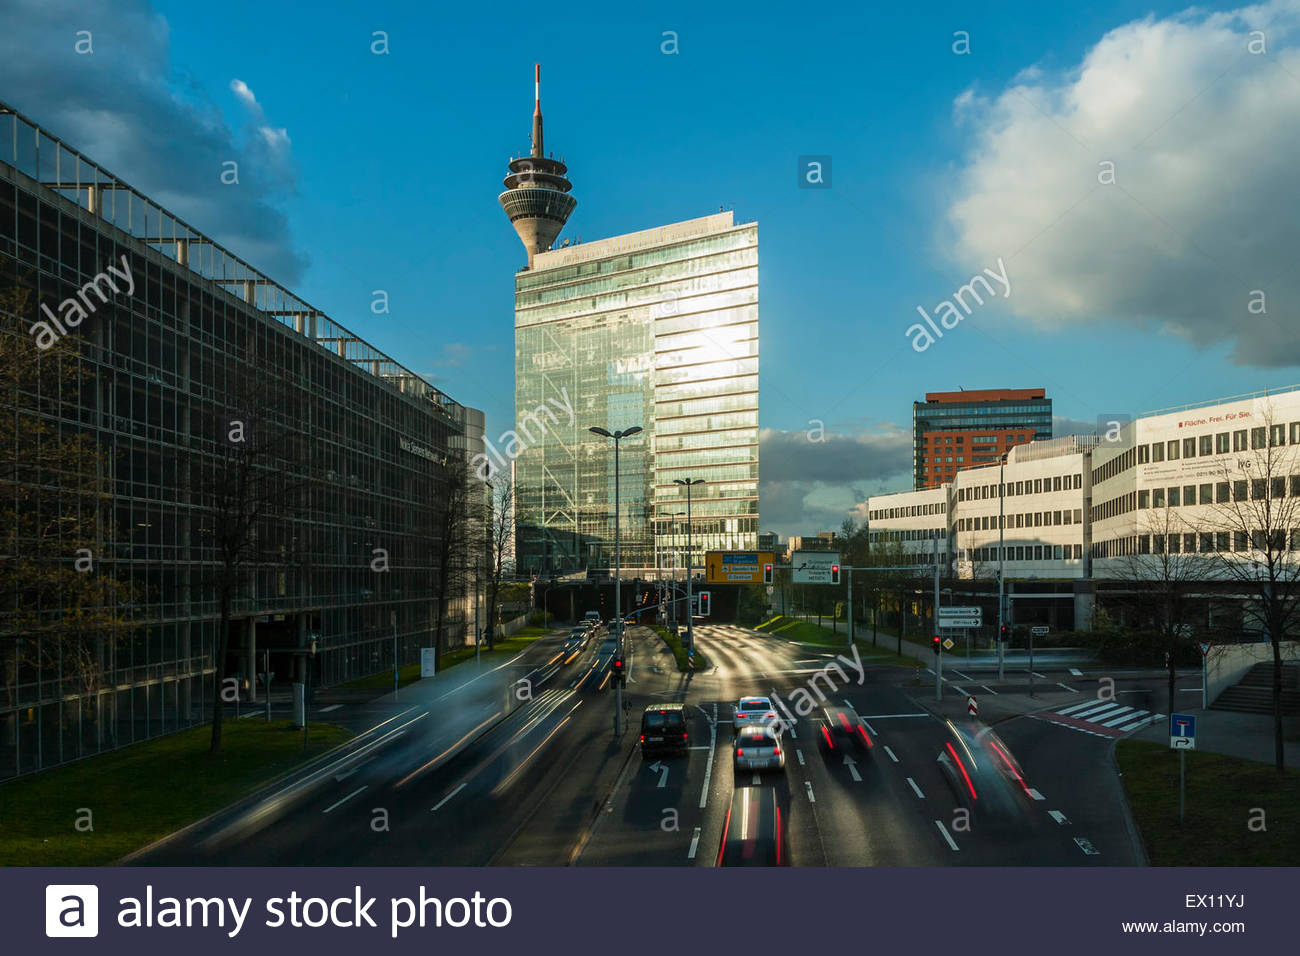 Modern Architecture Germany stadttor duesseldorf city gate building tv tower modern